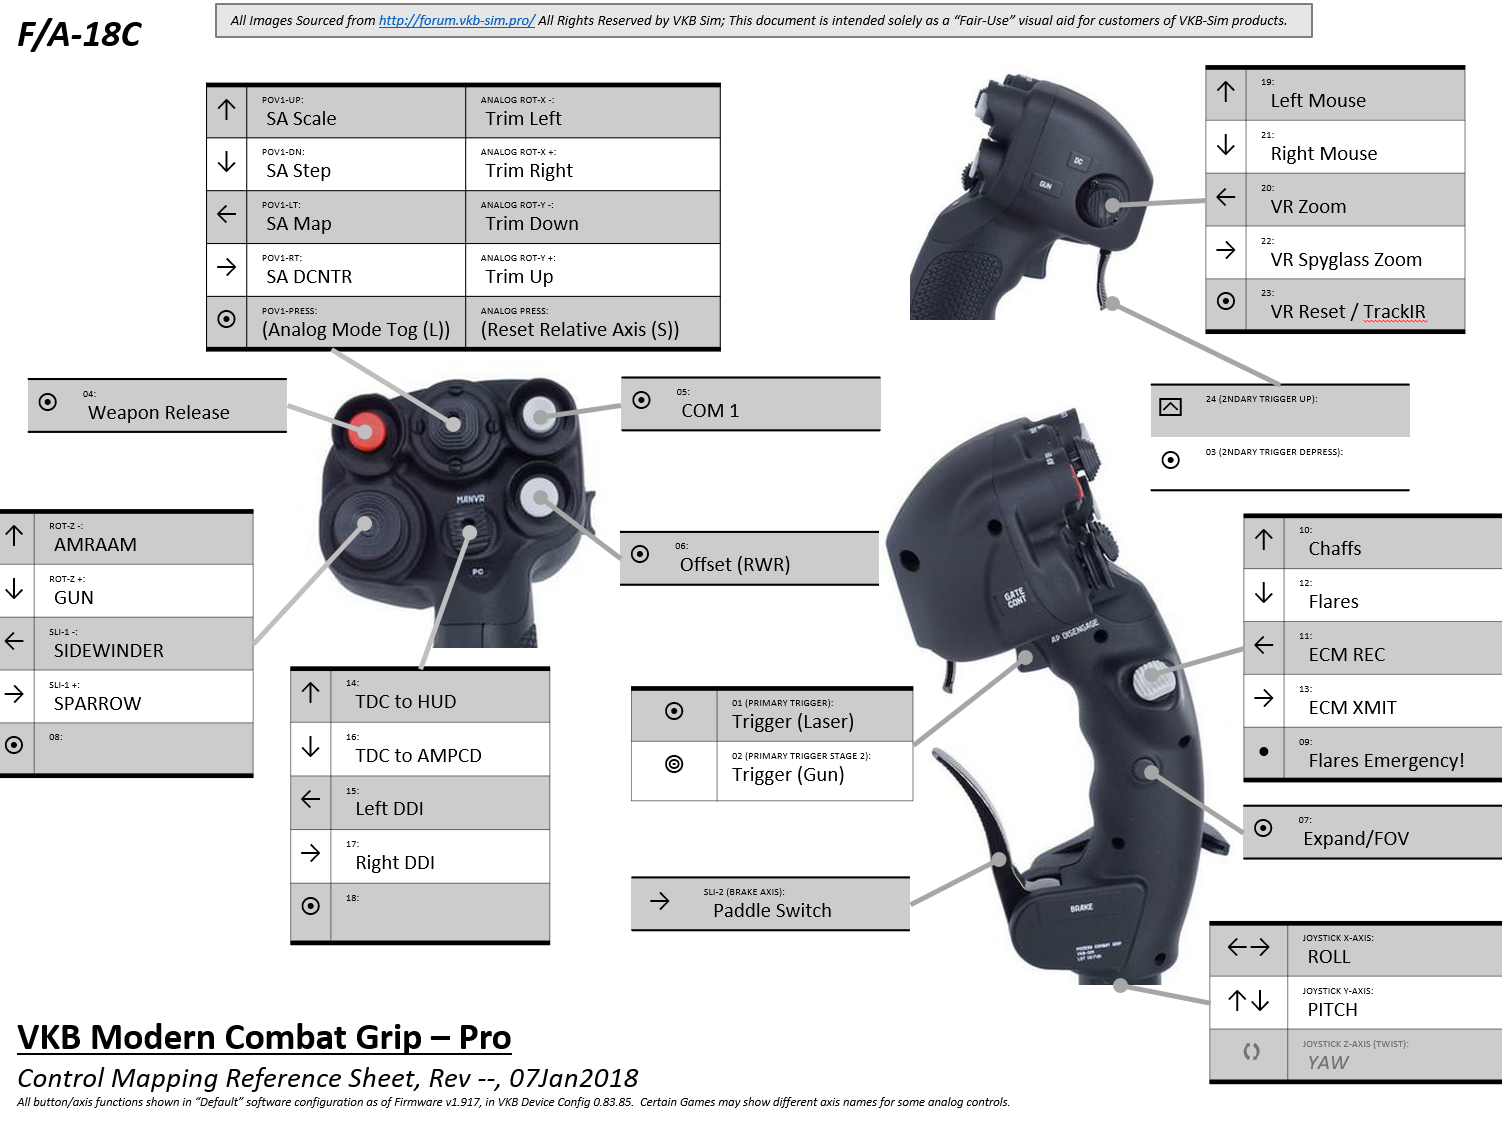 Profile VKB Modern Combat Grip Pro (MCG Pro) & Warthog Throttle for F/A-18C